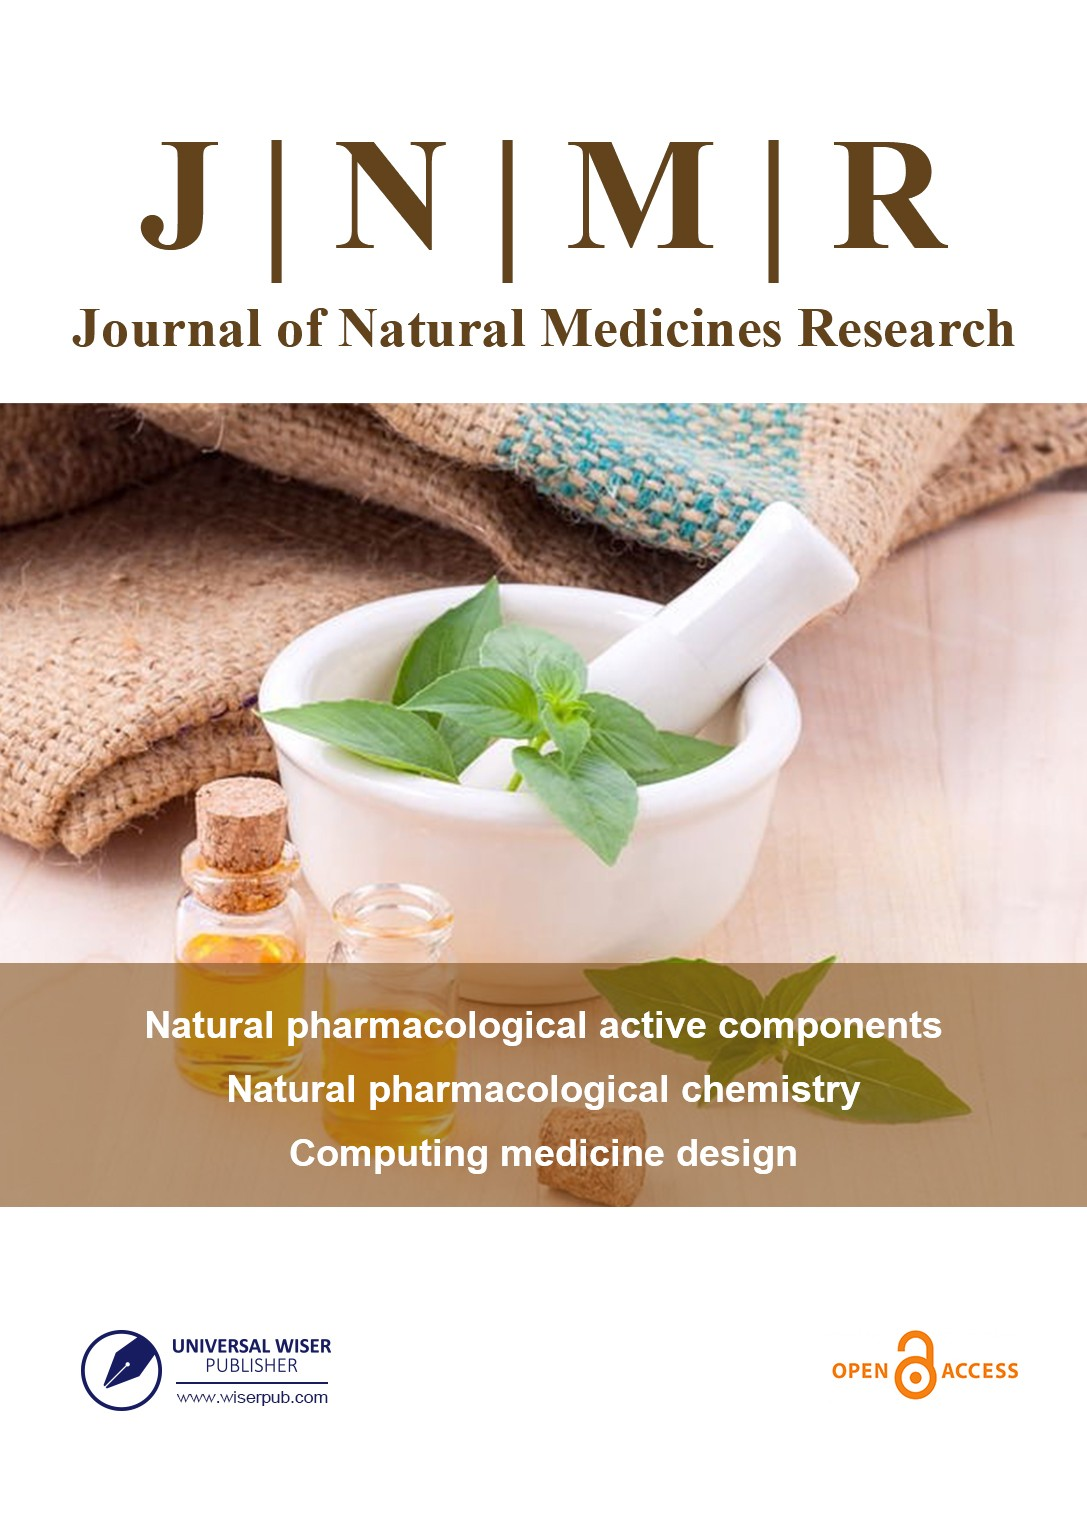 Journal of Natural Medicines Research